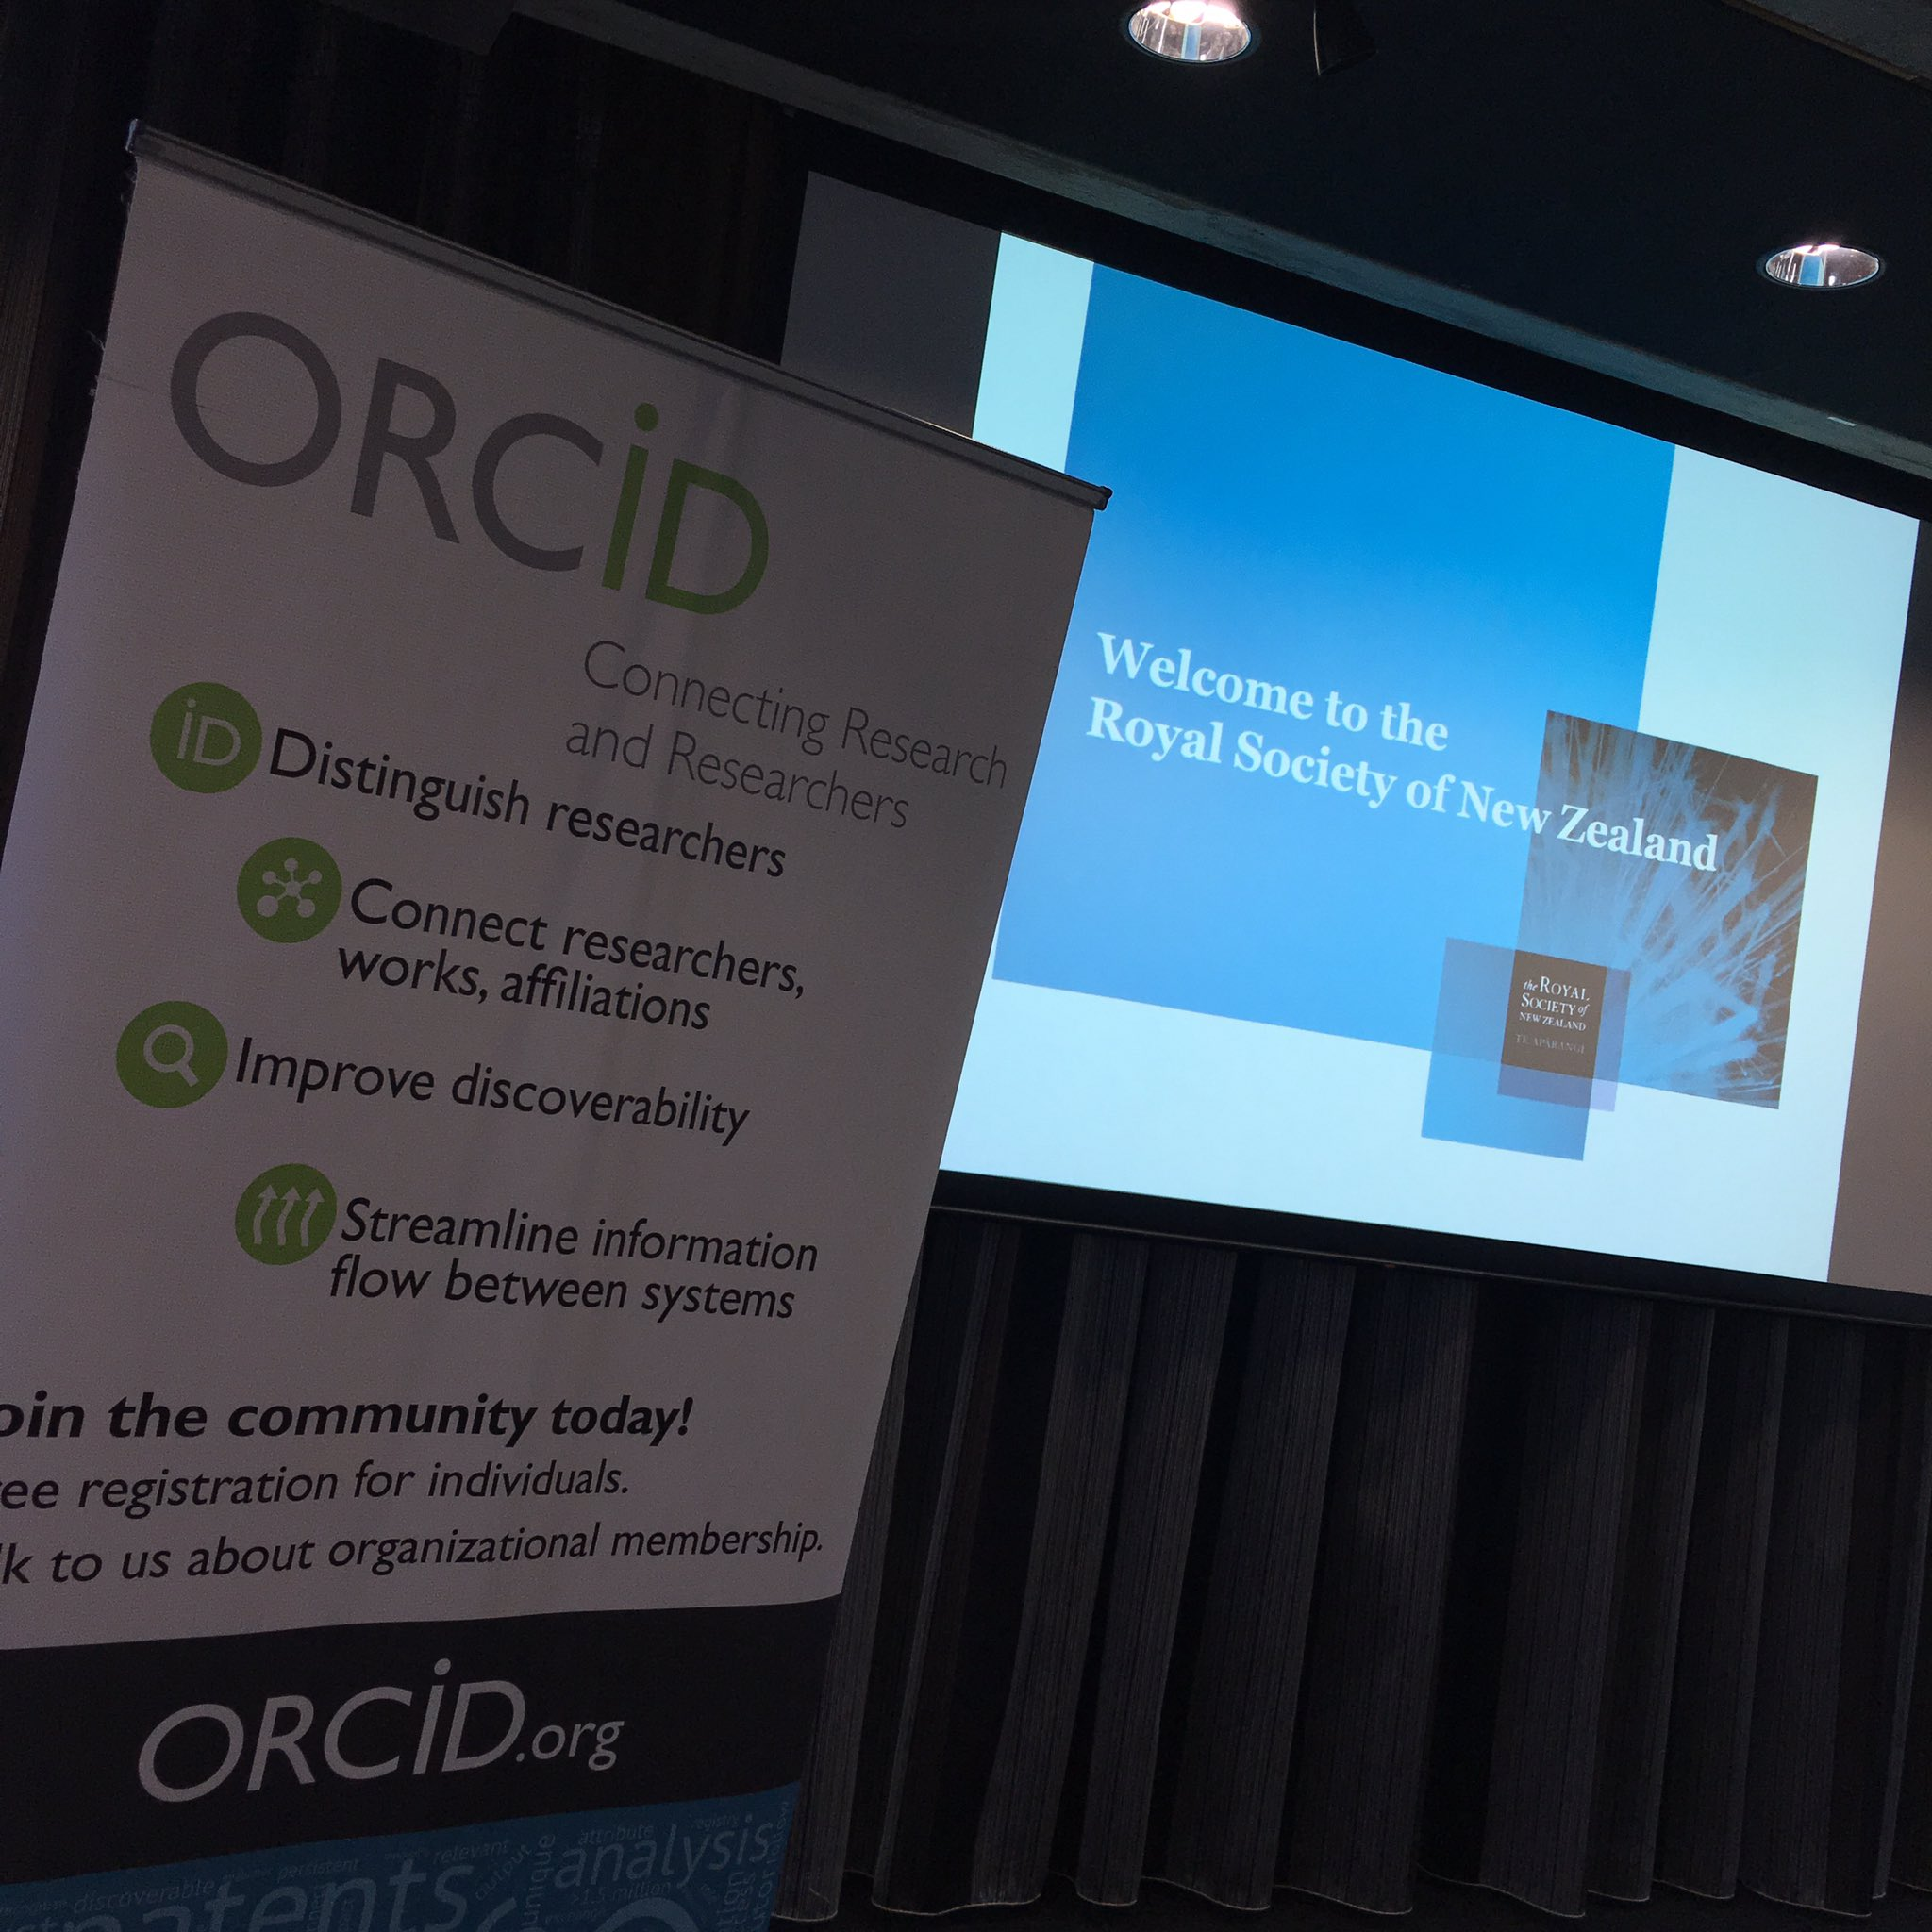 Excited to be here @royalsocietynz for @ORCID_Org NZ consortium launch! https://t.co/Opu1xhe00J